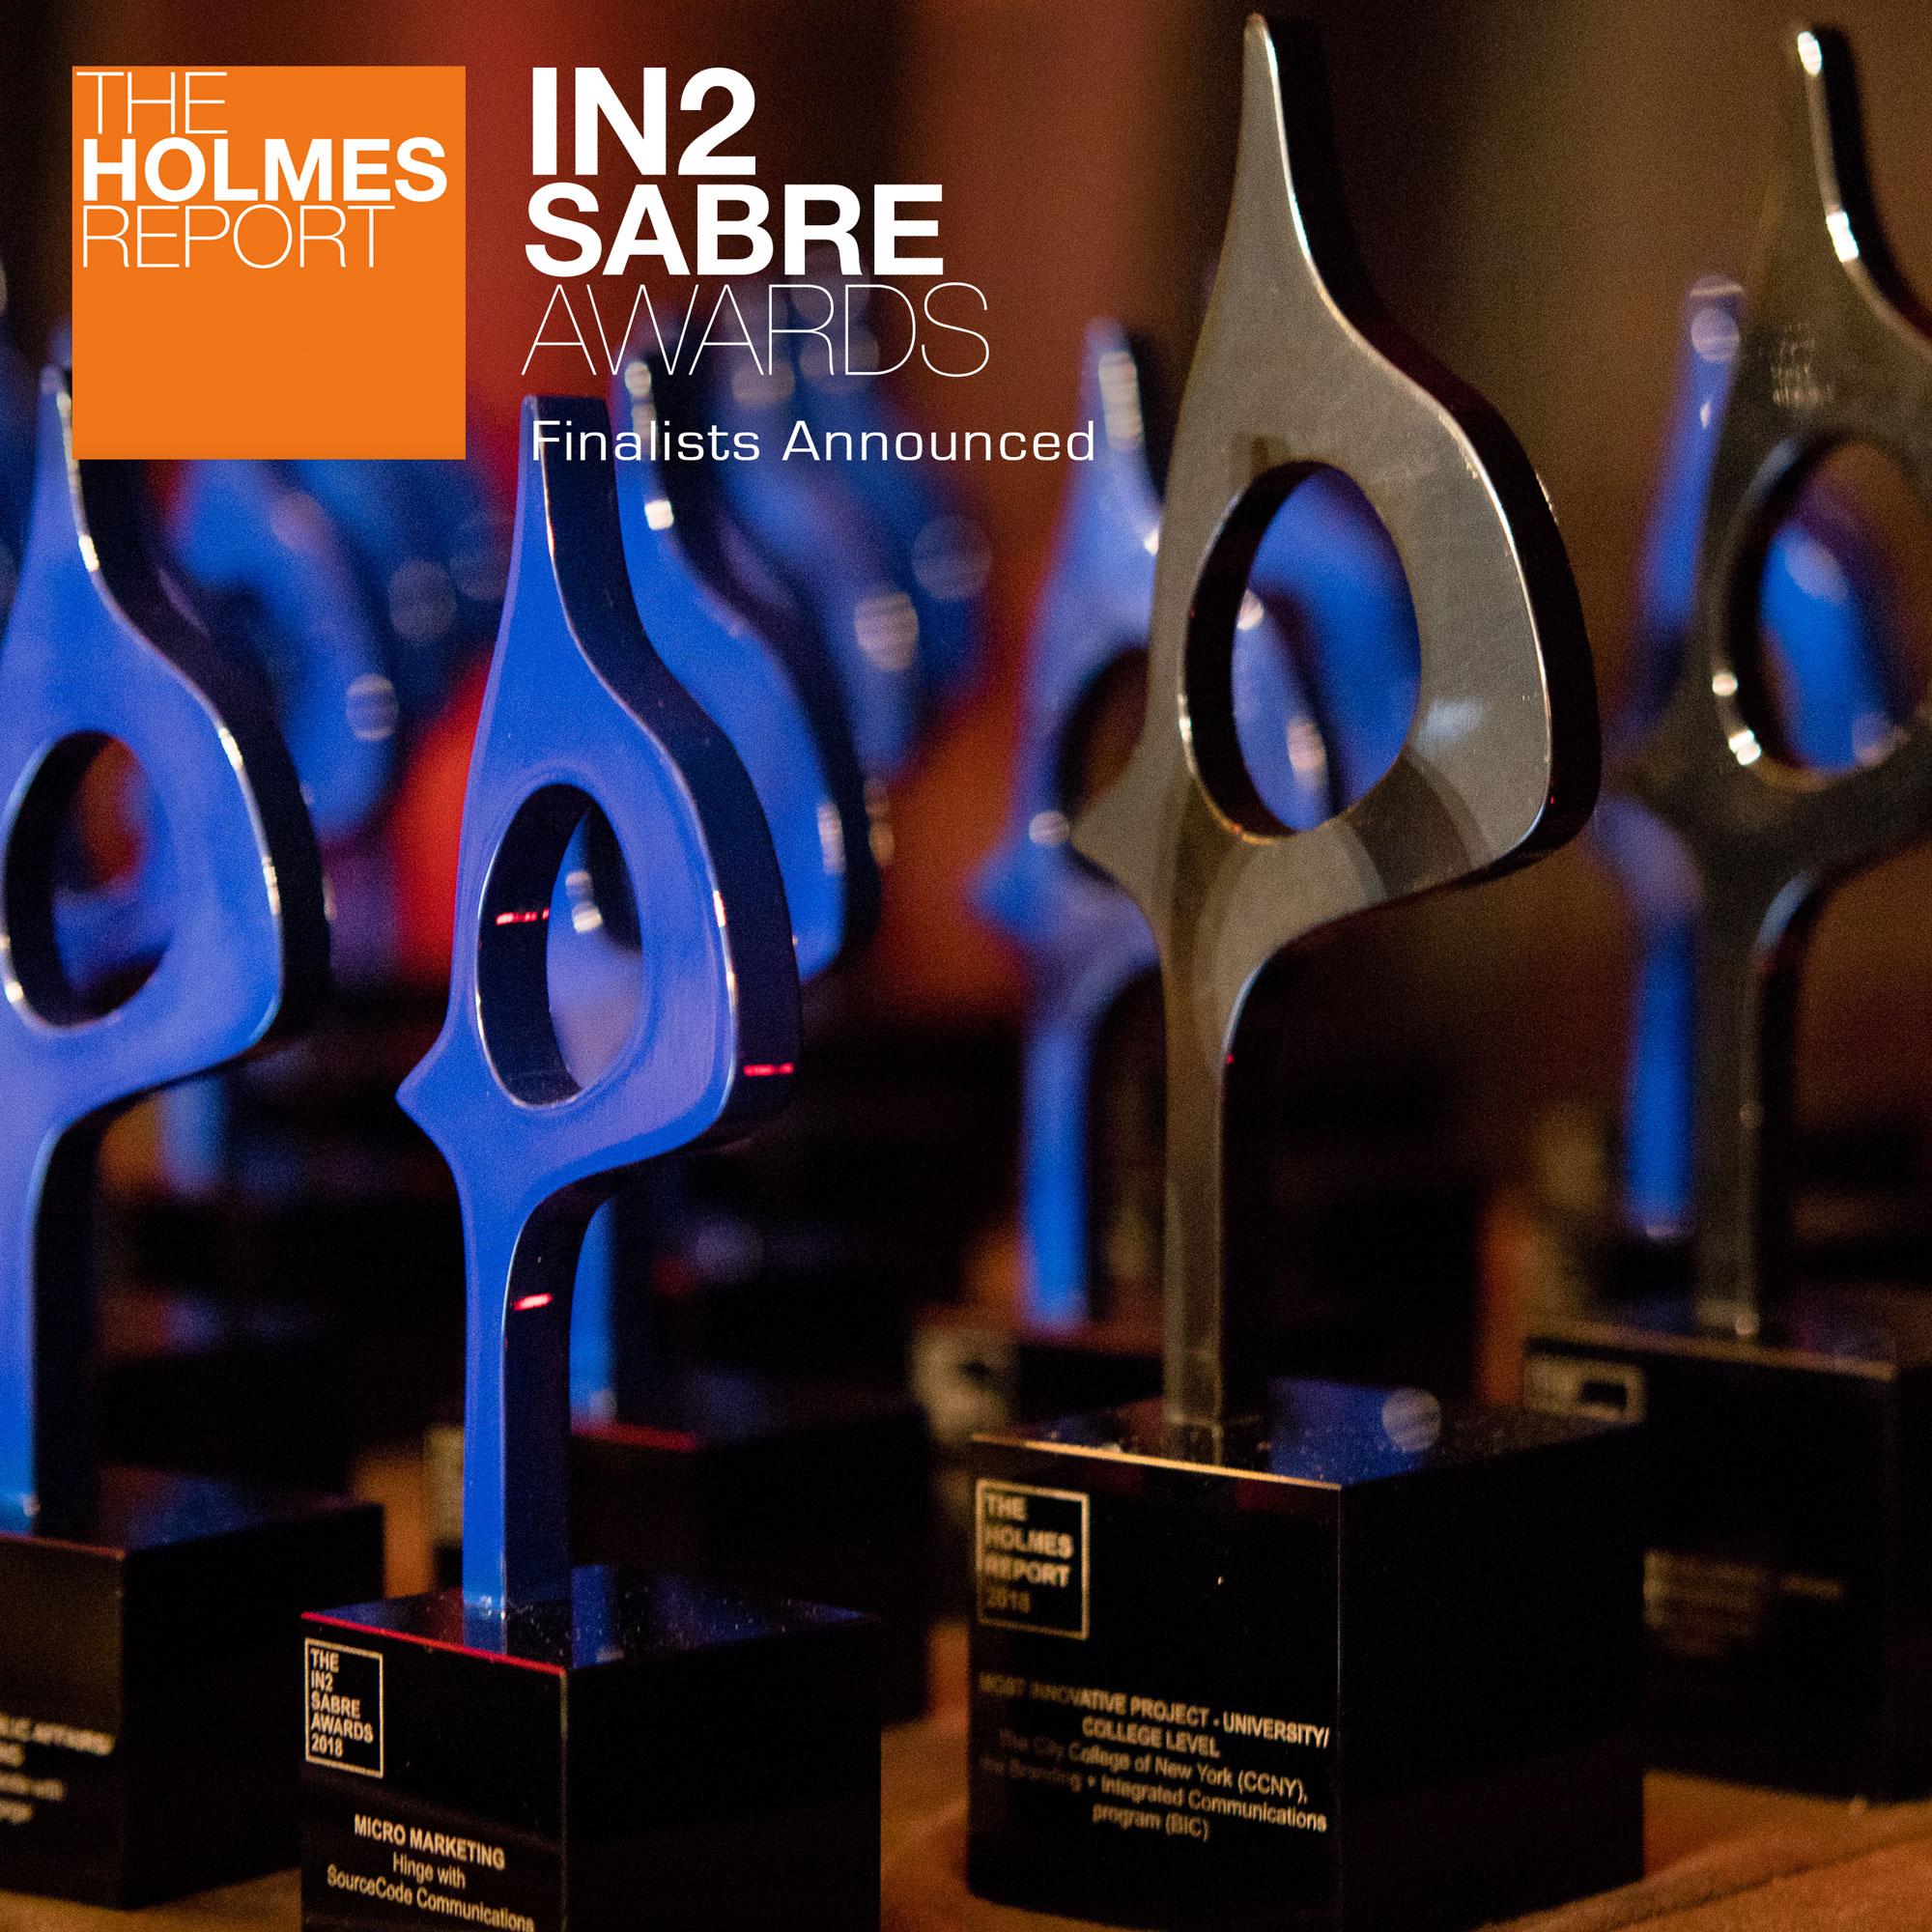 In2 SABRE Awards Finalists